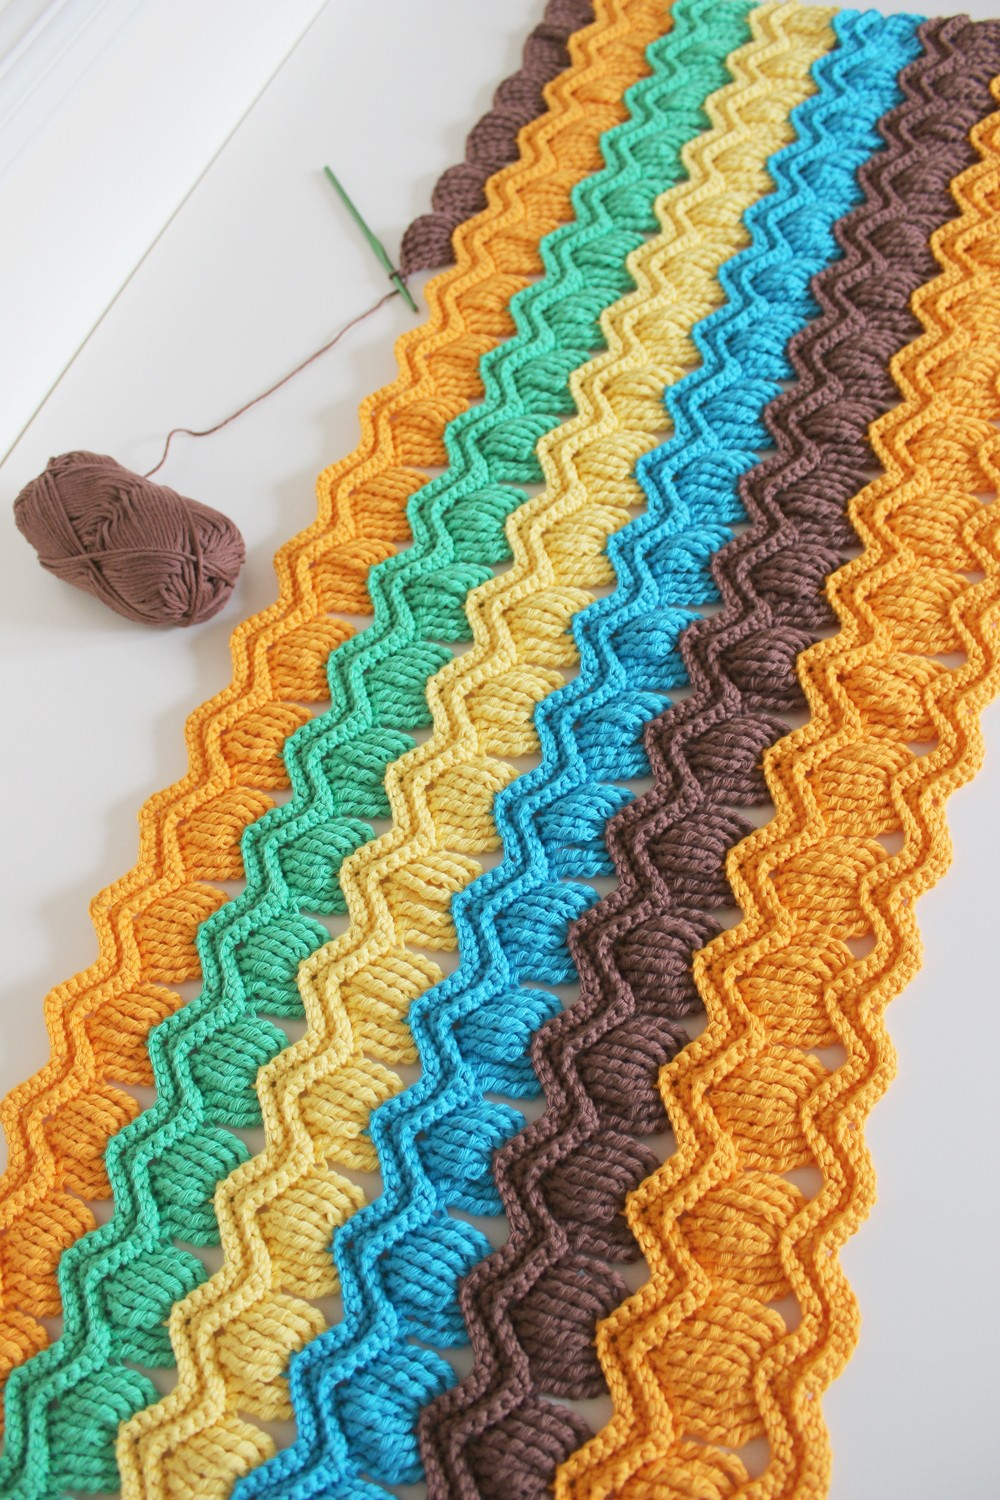 Crochet Baby Blanket Patterns Easy Free : How To Crochet A Ripple Blanket galleryhip.com - The ...